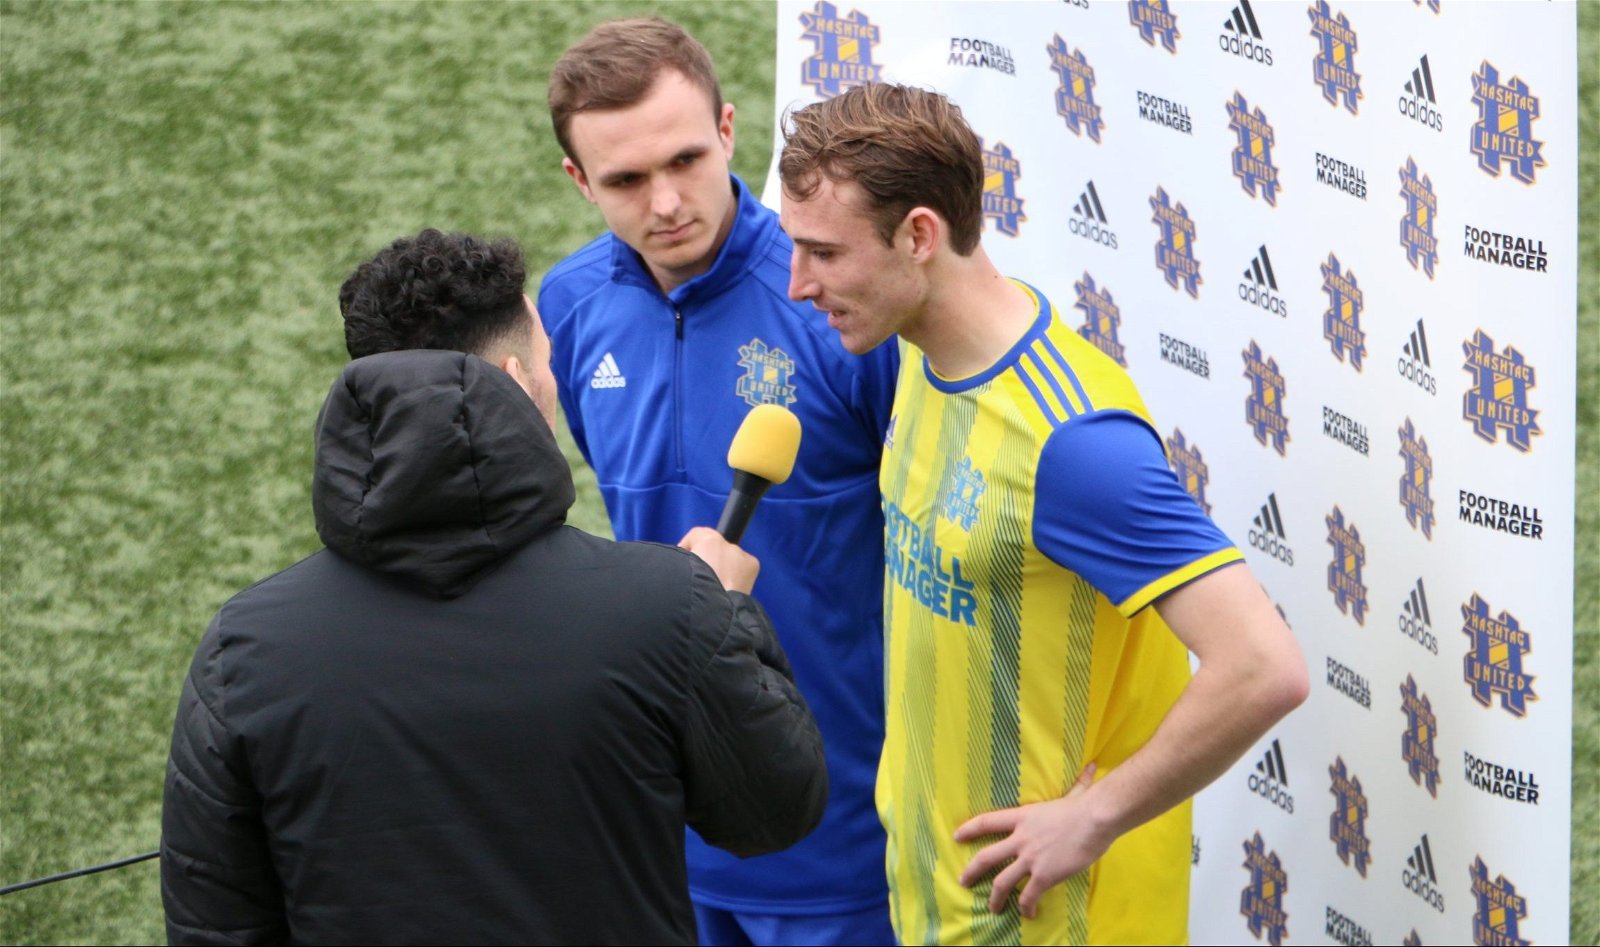 Fantastic: Albie and Cain share their thoughts on the 4-0 win over Braintree Town Reserves